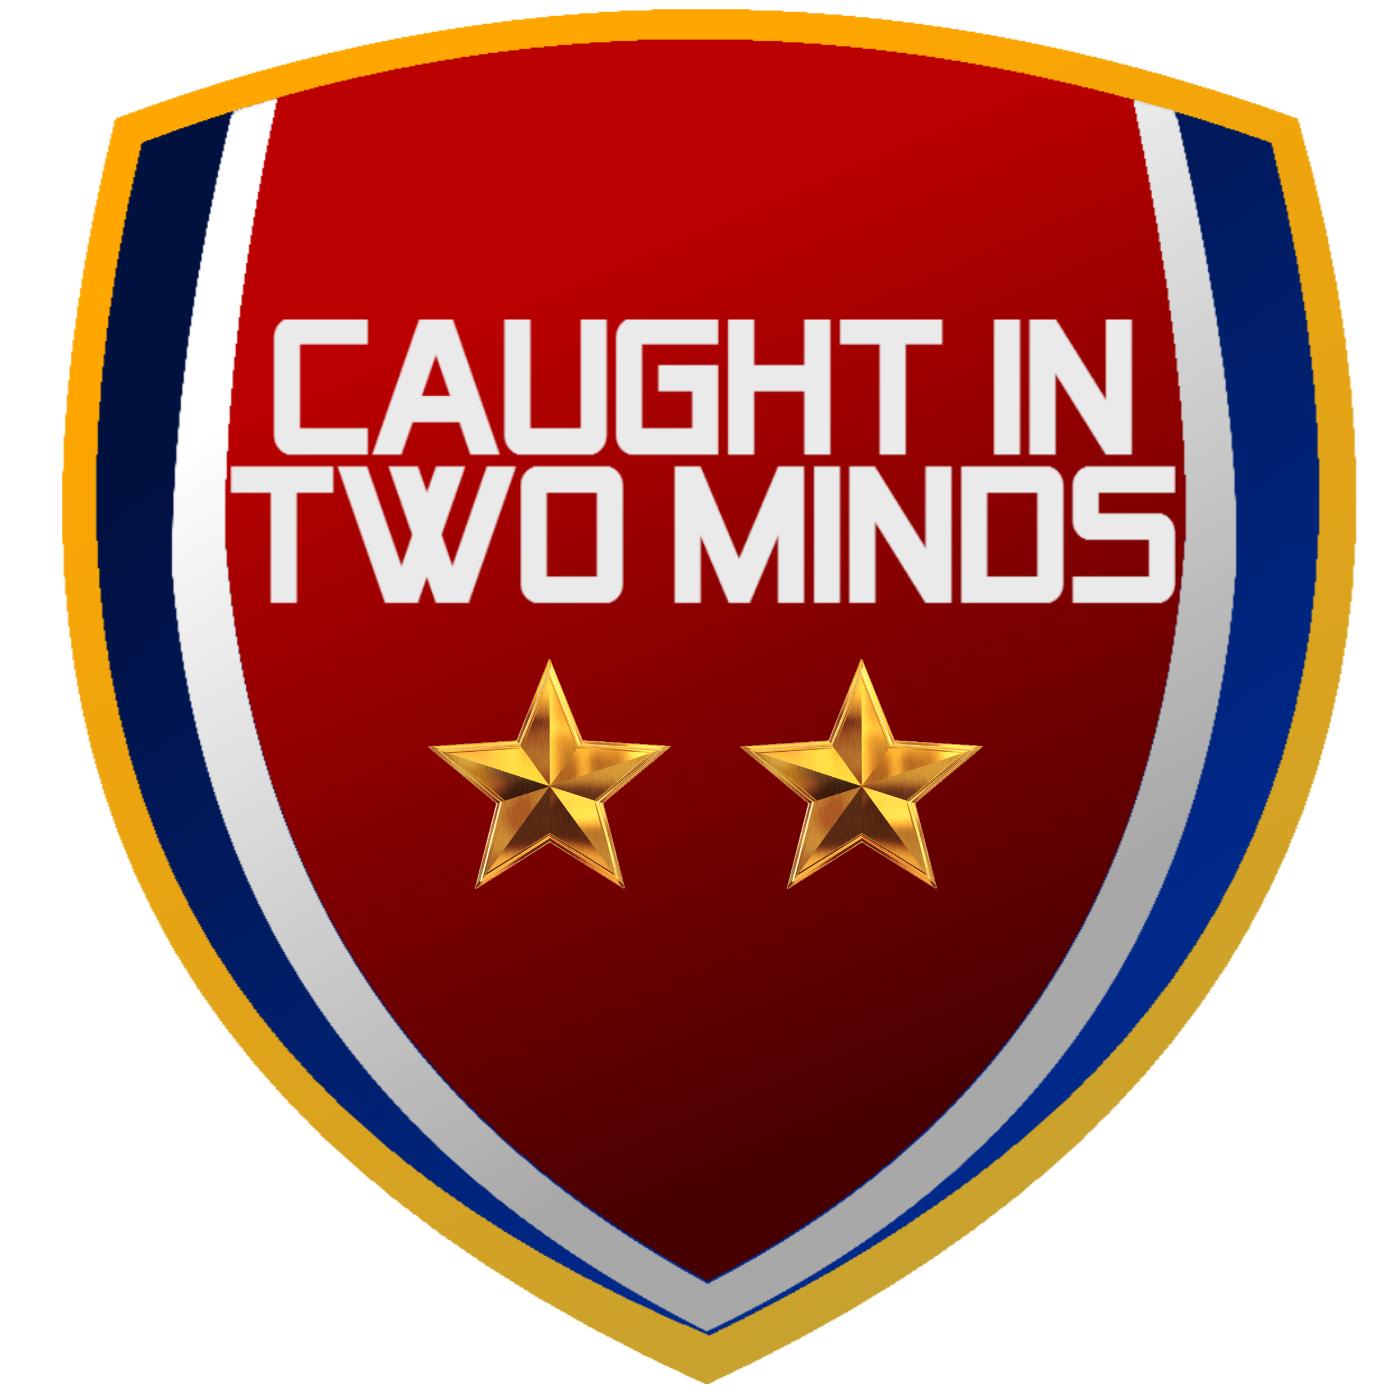 22 - Caught In Two Minds